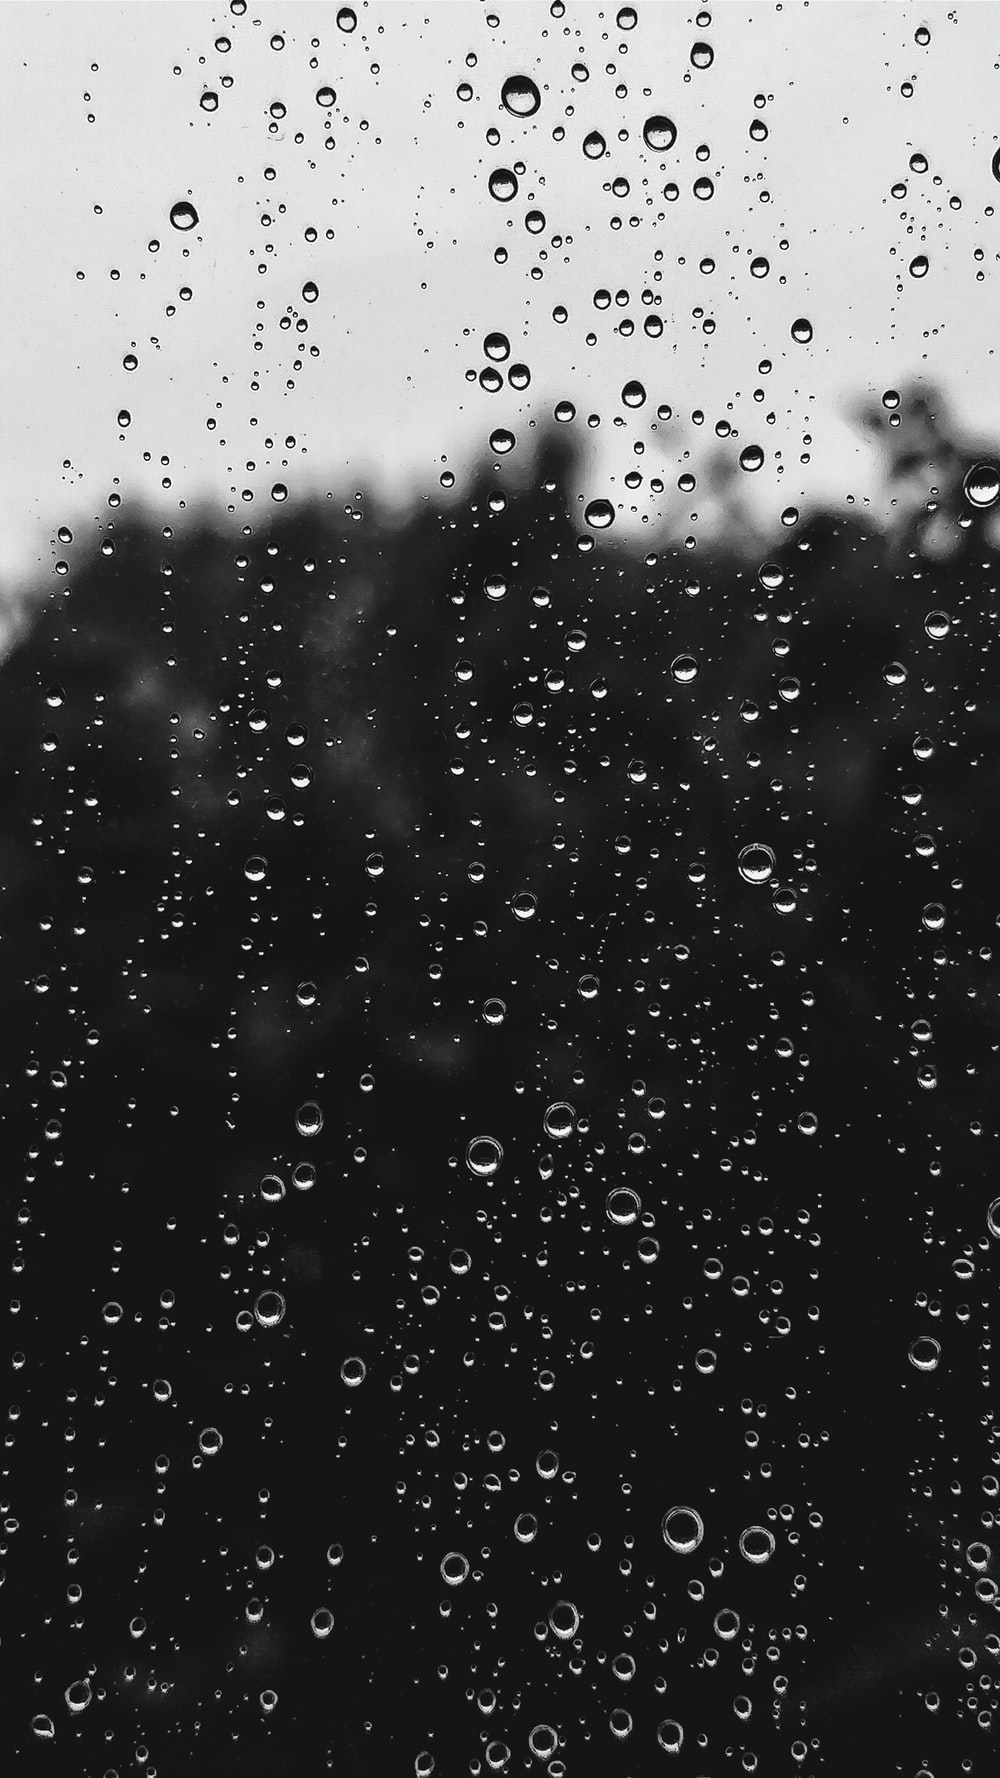 350+ Rain Wallpapers [HD] | Download Free Images & Stock Photos On ...